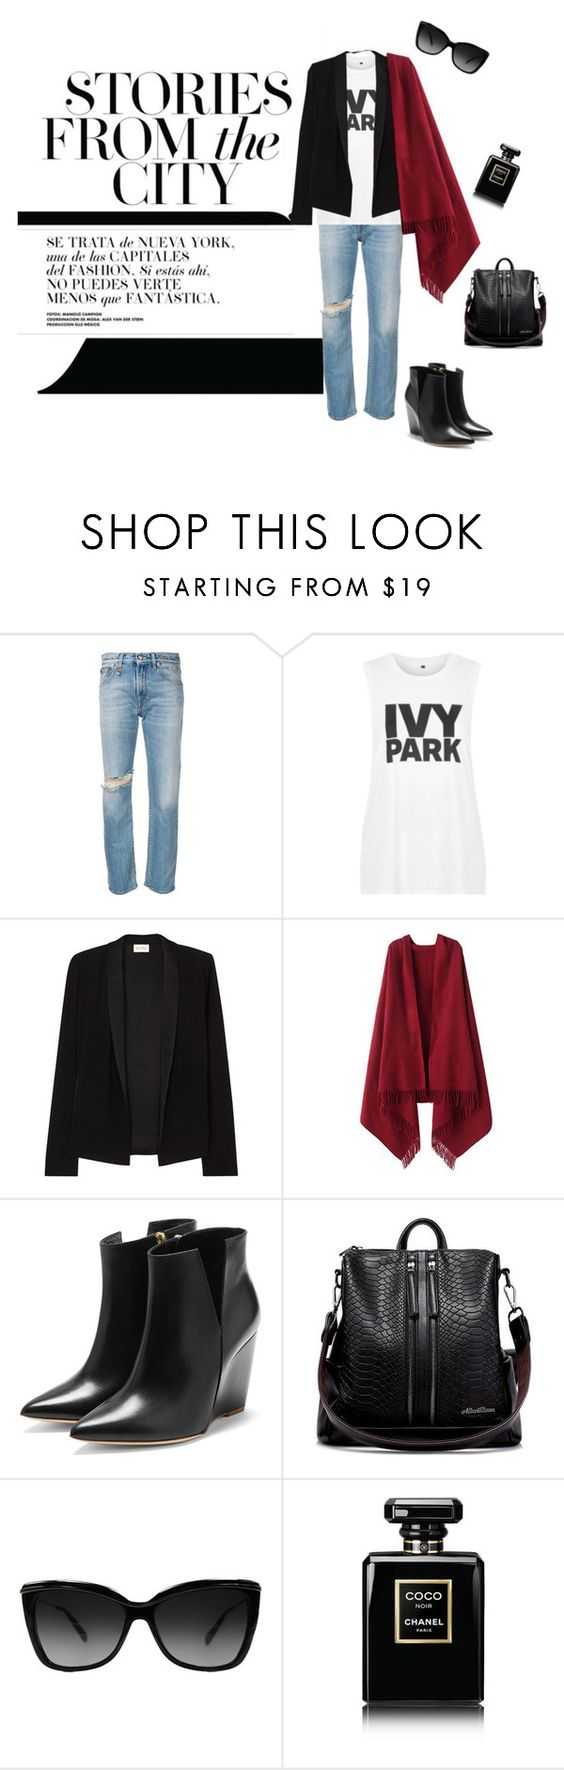 """Denim Chic"" by lifestylestories ❤ liked on Polyvore featuring R13, Topshop, American Vintage, Chicnova Fashion, Rupert Sanderson, Ray-Ban and Chanel"